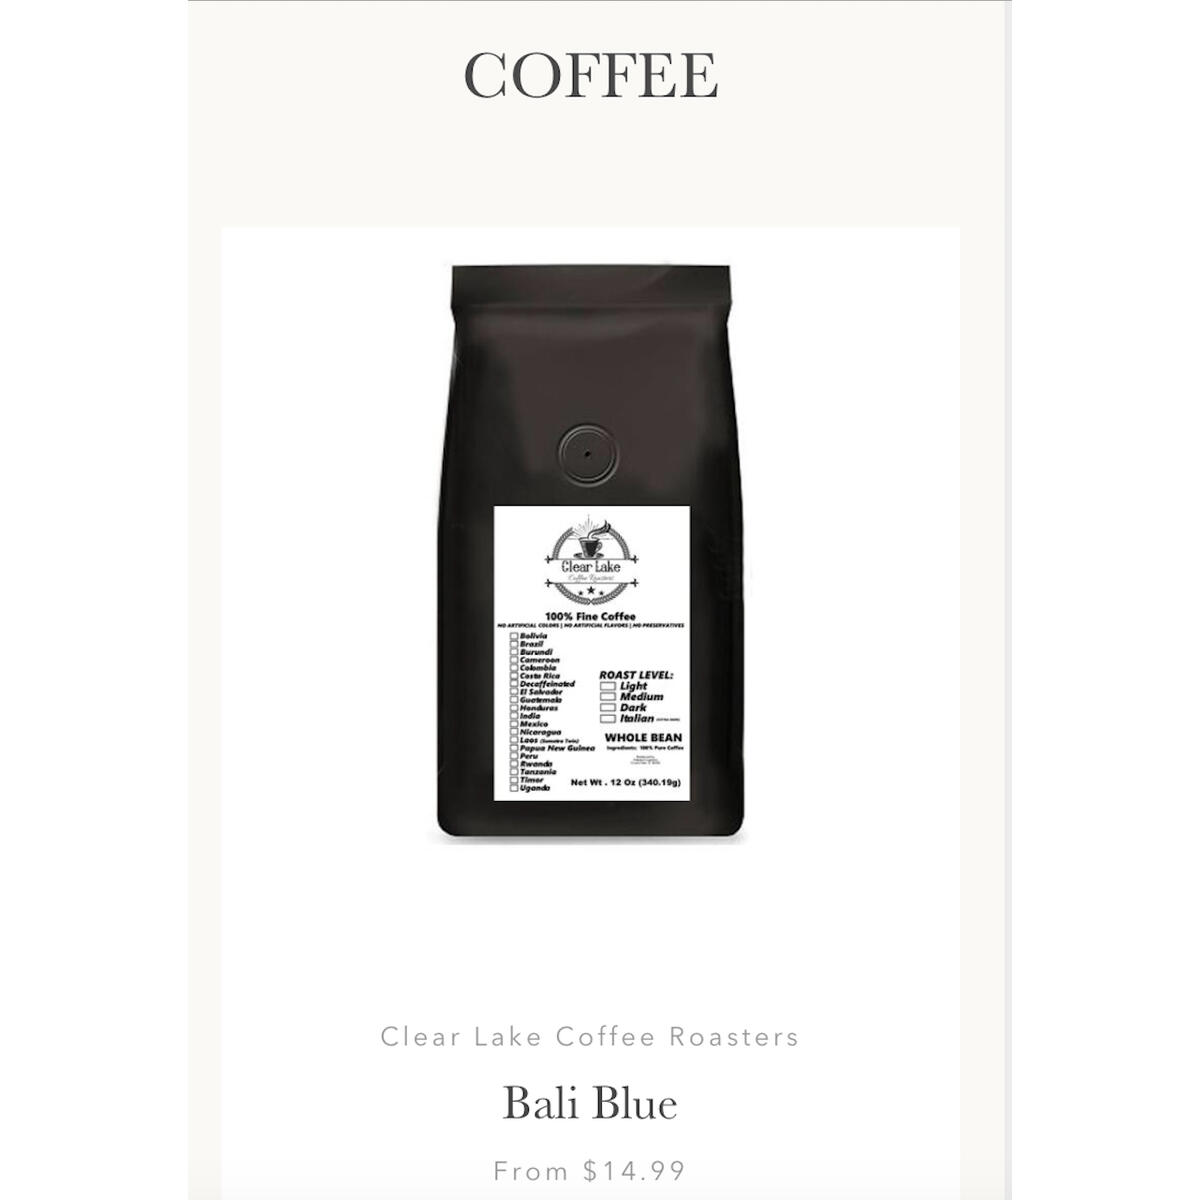 Bail Blue - 12 oz standard grind